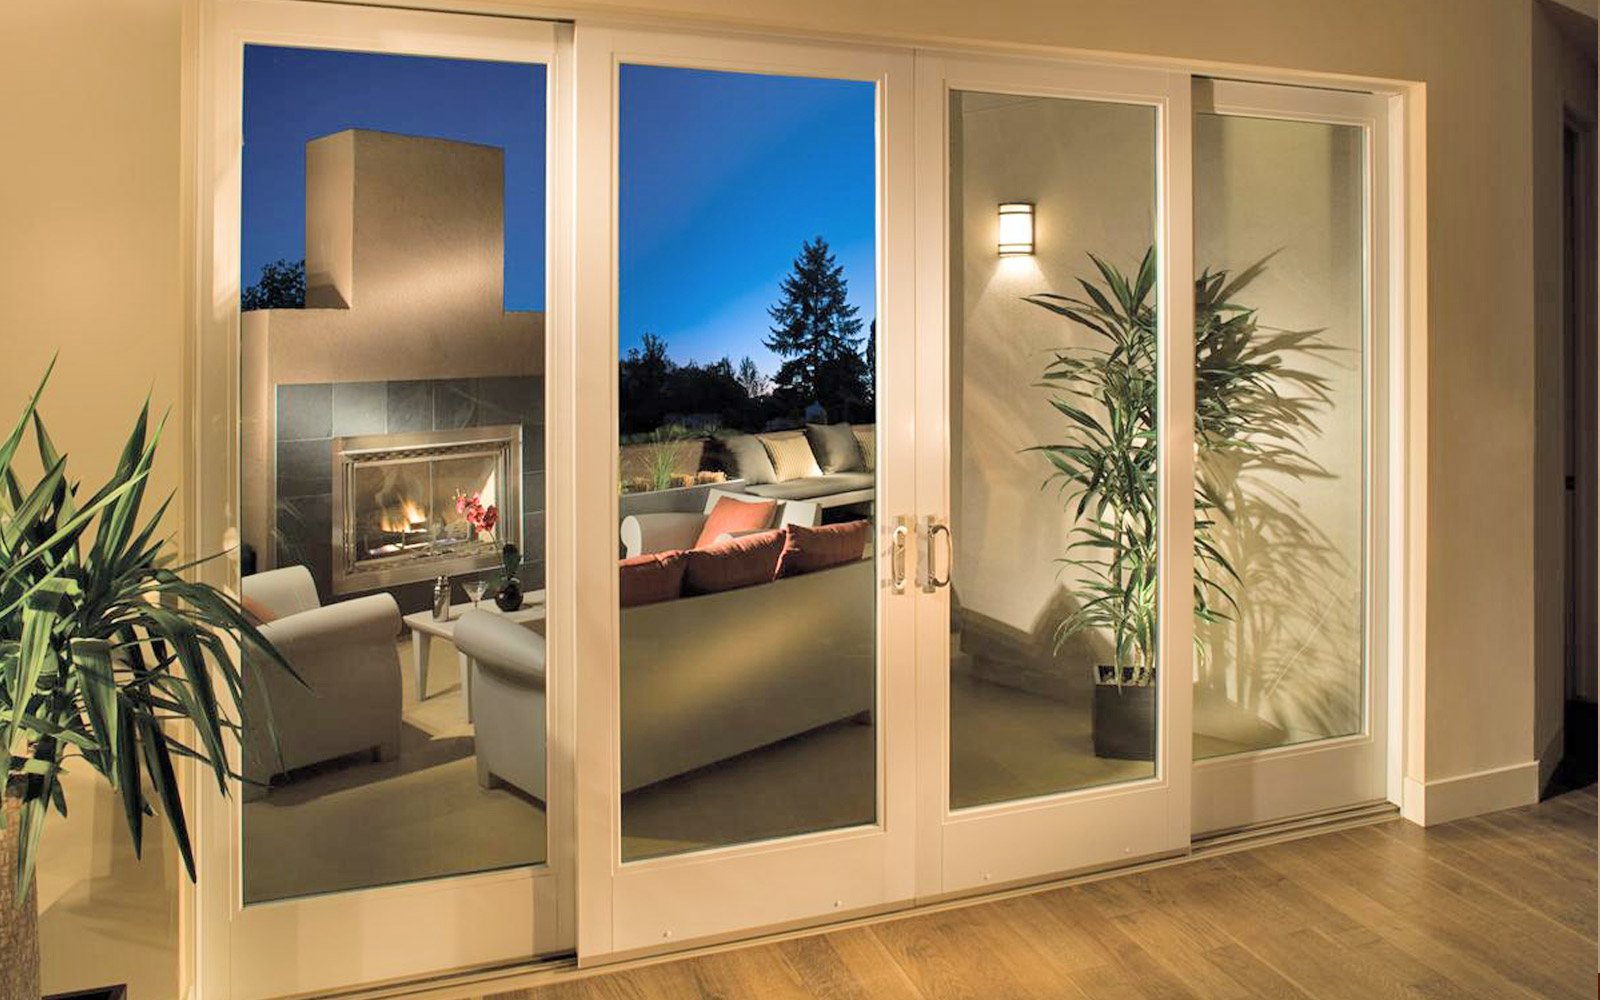 gallery--1600x1000--sliding-doors-1.jpg